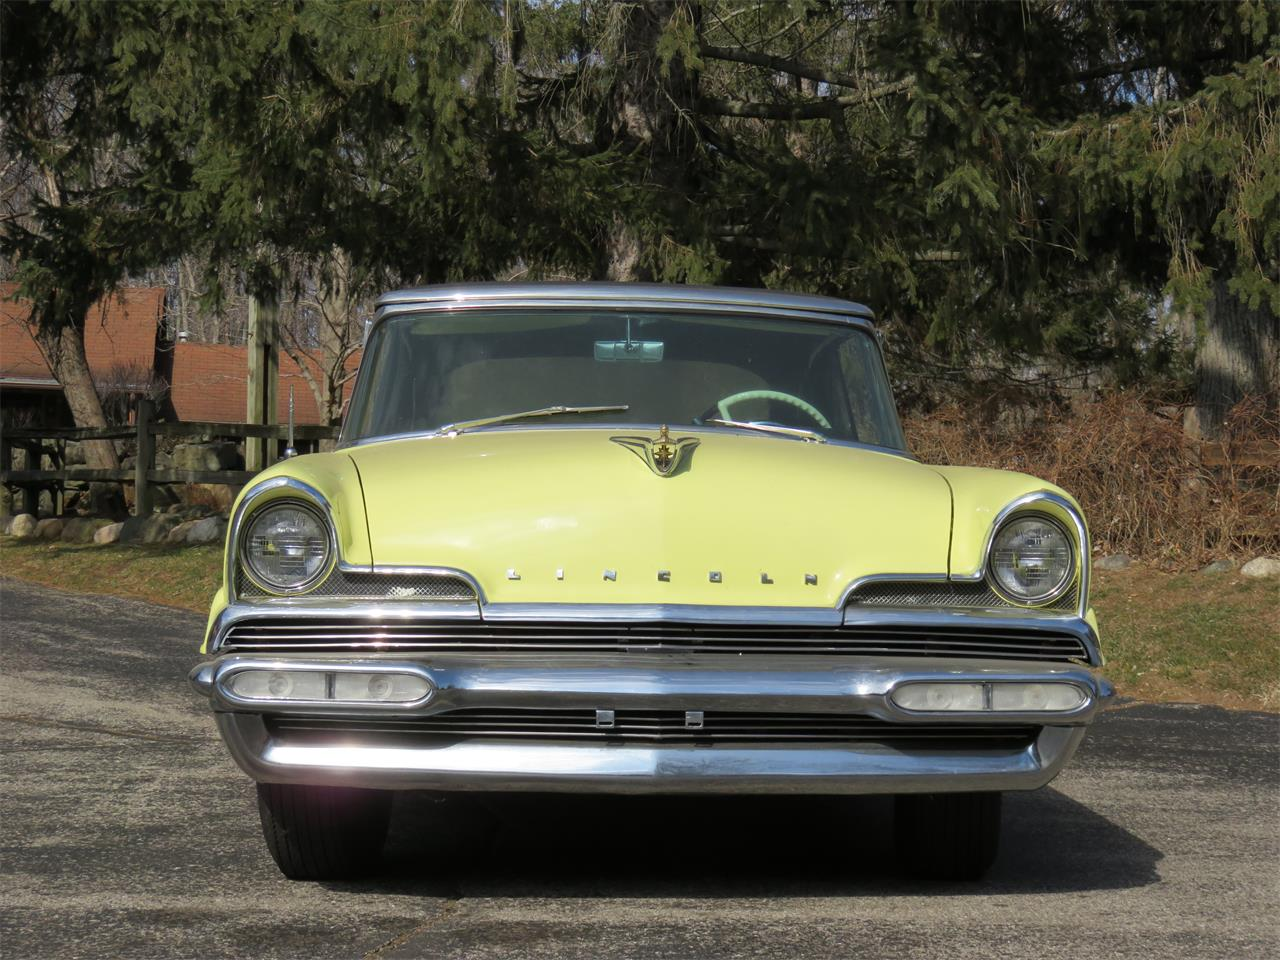 Large Picture of 1956 Lincoln Premiere Auction Vehicle Offered by Earlywine Auctions - MXJG